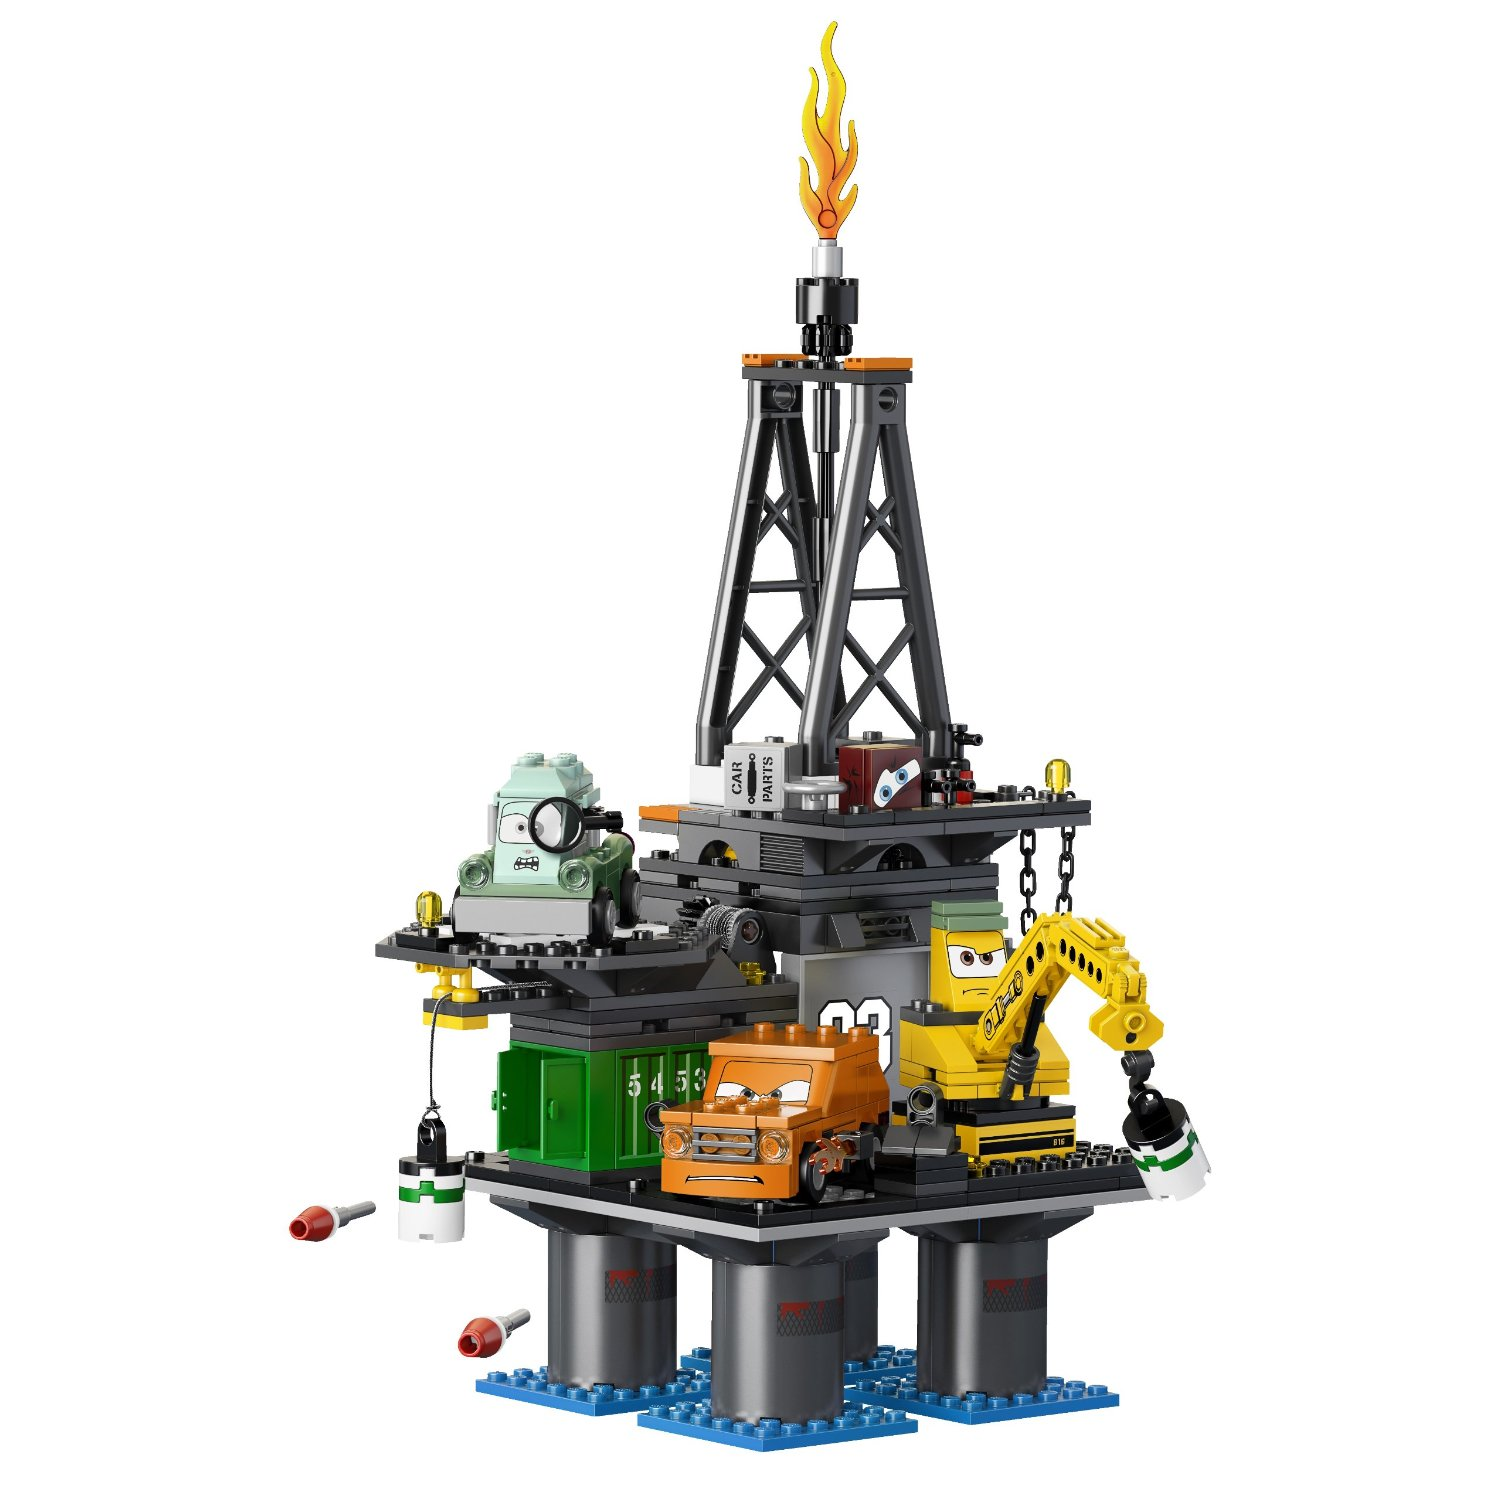 Oil Rig clipart #15